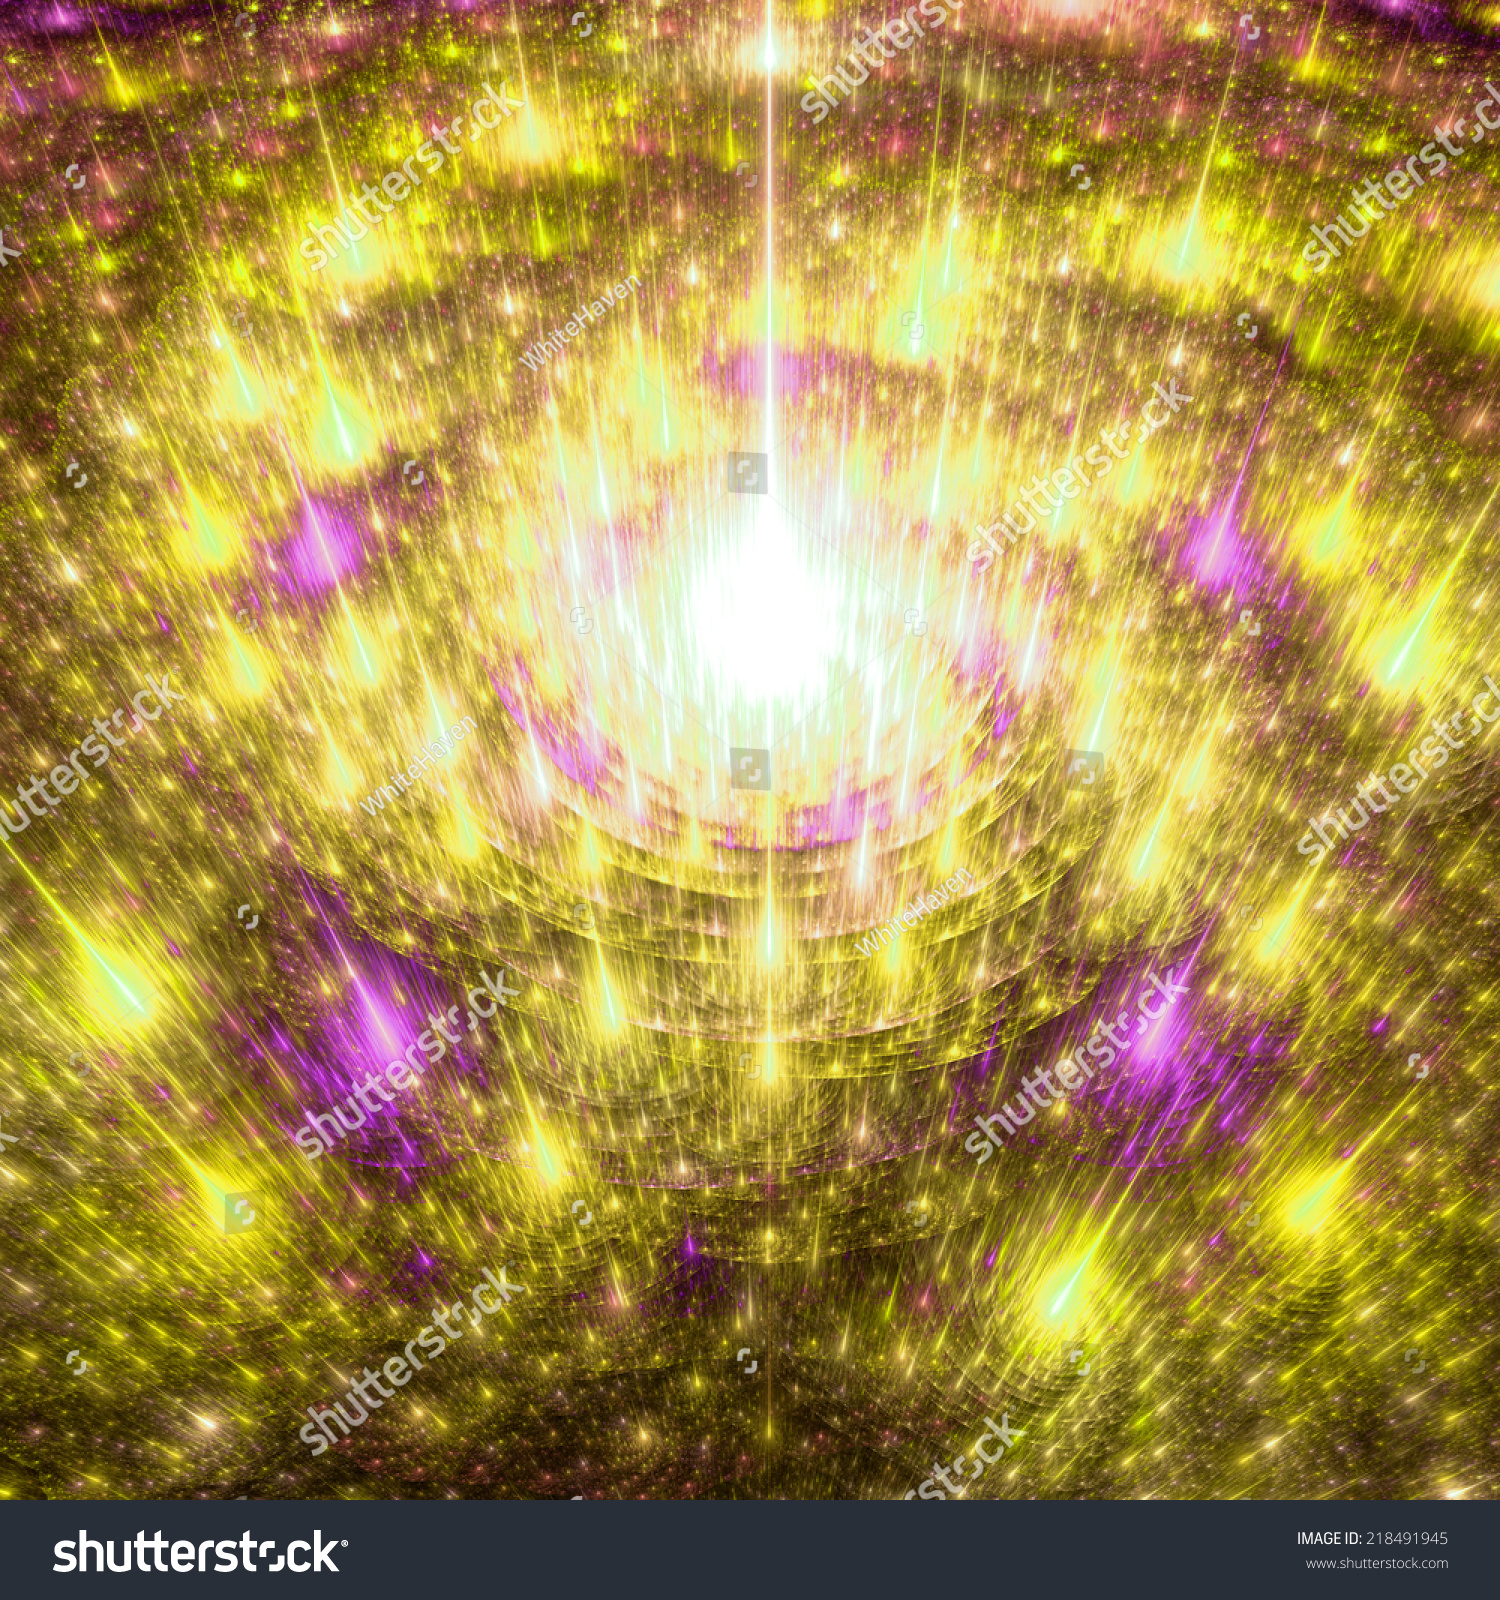 Fractal Black Flower Free Stock Photo: Shining Bright Yellow, Orange And Pink Abstract Spiraling